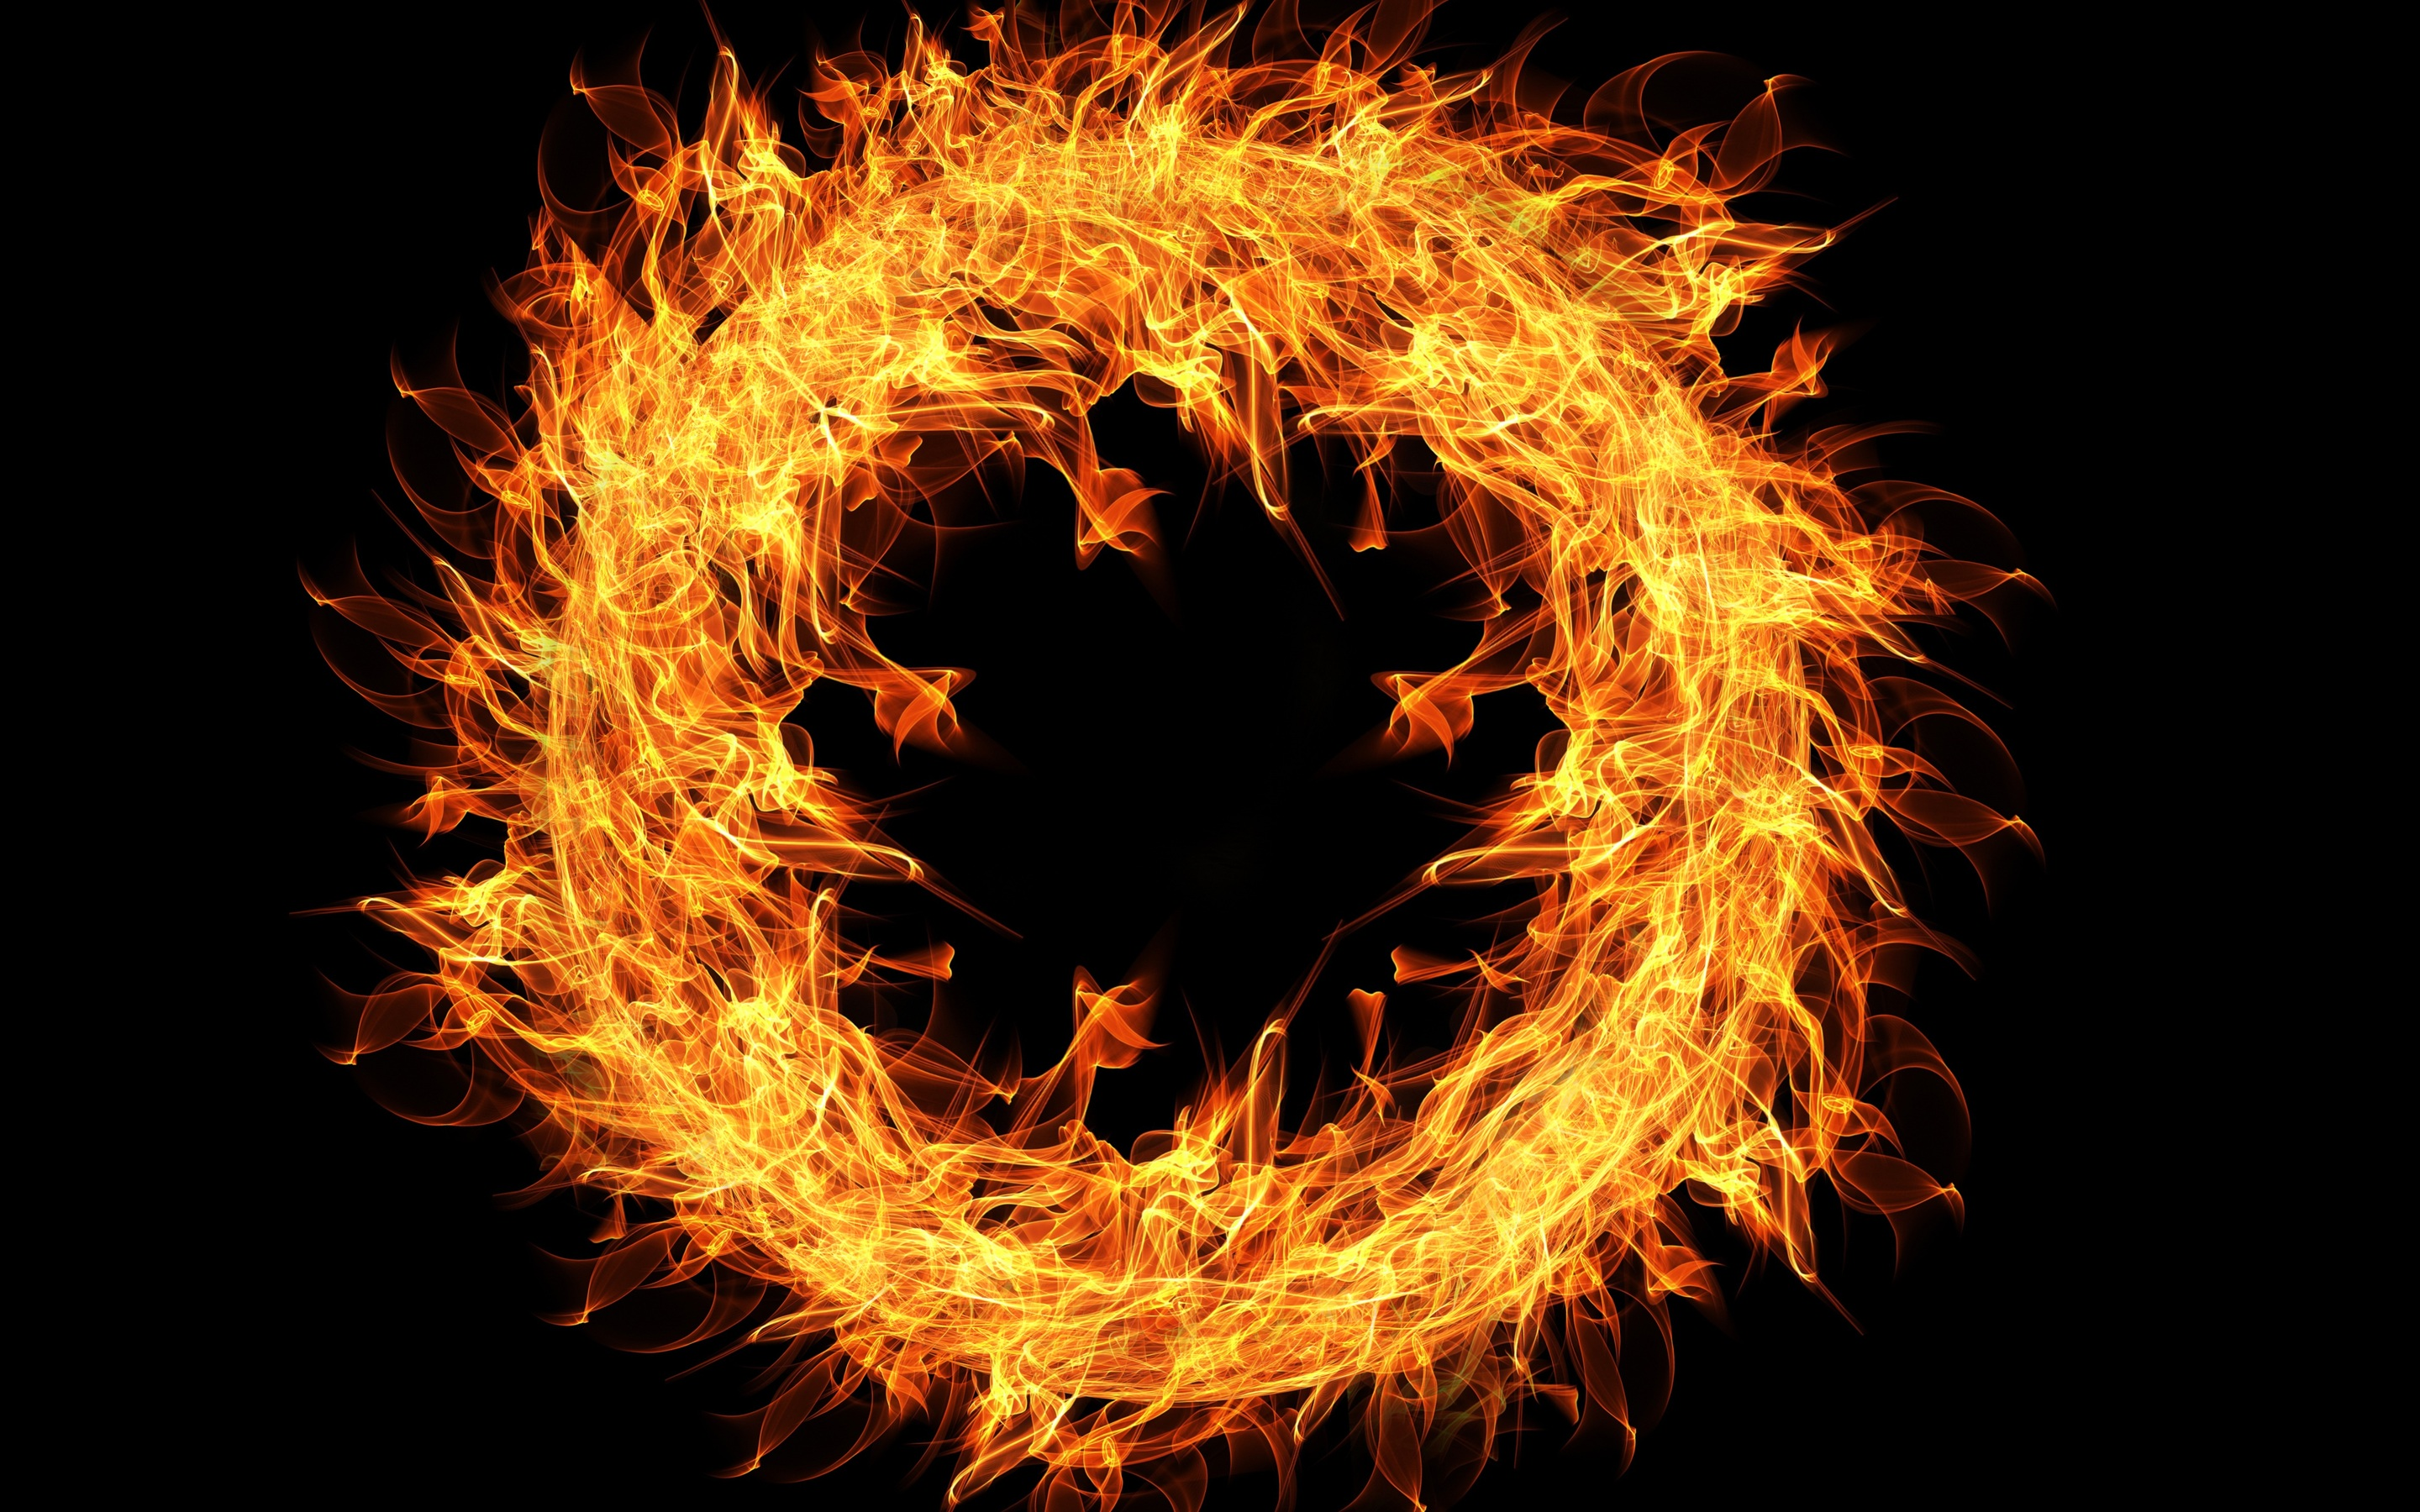 fire-flame-ring-4k-jk.jpg